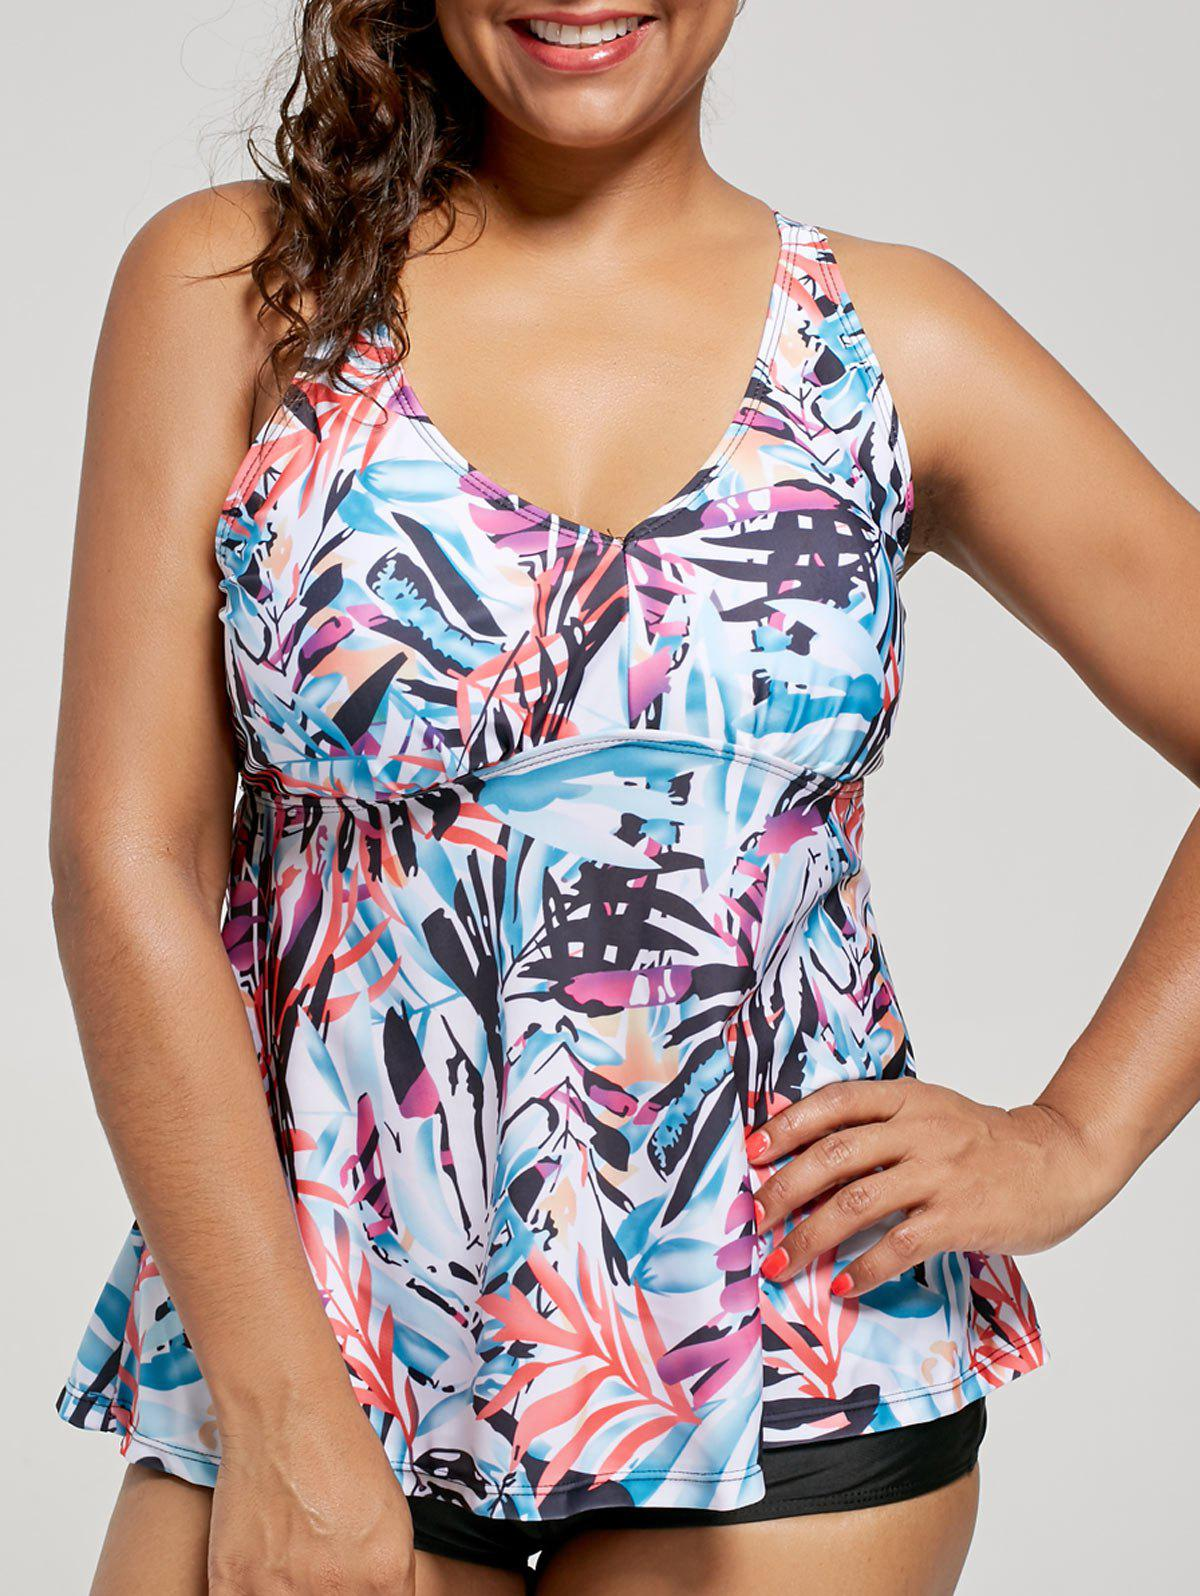 Plus Size Multi Color Printed Blouson Tankini SwimwearWOMEN<br><br>Size: 5XL; Color: FLORAL; Gender: For Women; Swimwear Type: Tankini; Material: Cotton,Polyester,Spandex; Bra Style: Padded; Support Type: Wire Free; Pattern Type: Floral; Waist: Natural; Elasticity: Elastic; Weight: 0.3200kg; Package Contents: 1 x Tankini Top 1 x Swim Bottom;